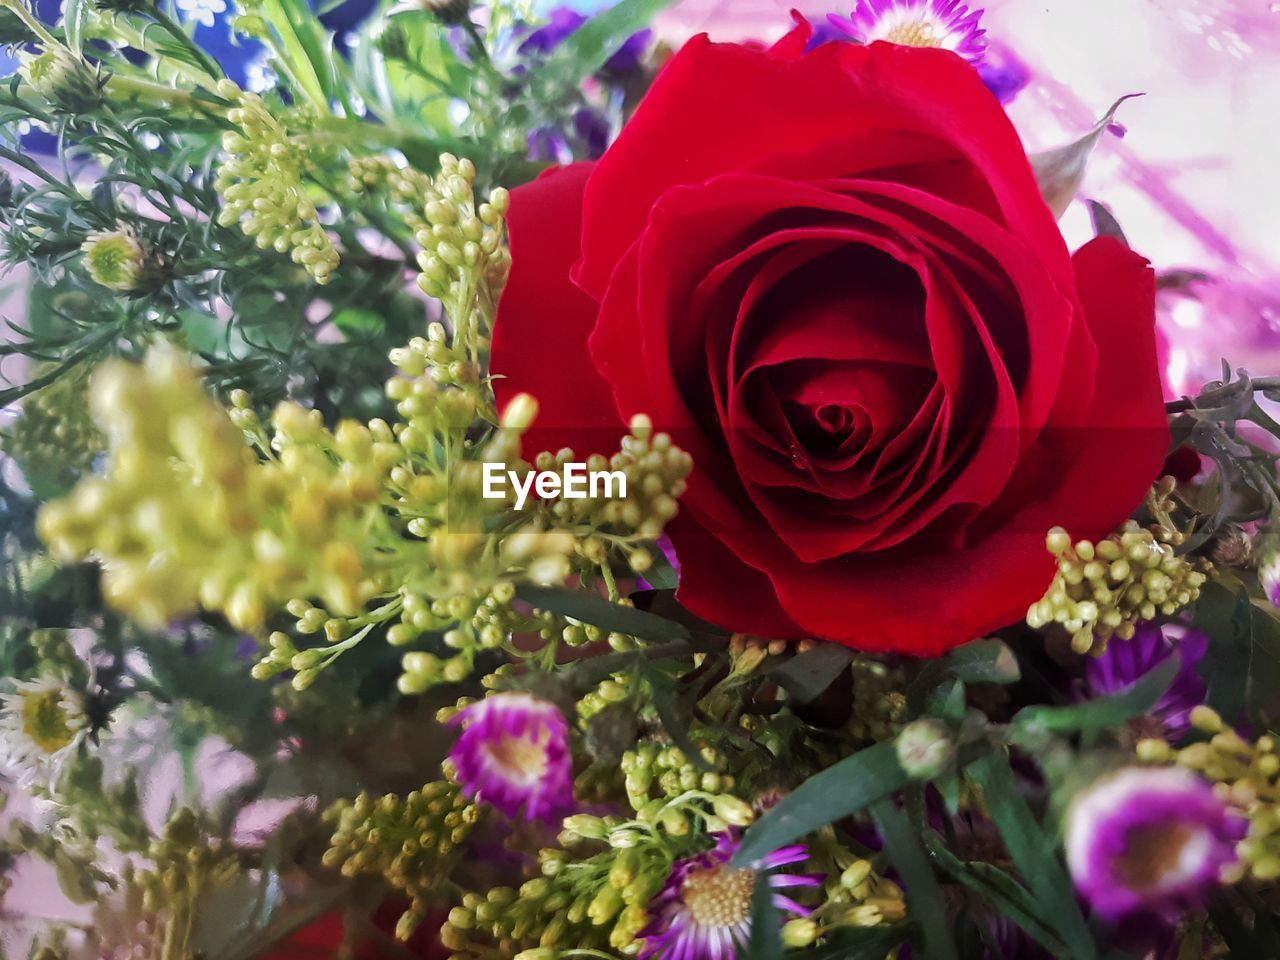 flower, plant, rose, beauty in nature, flowering plant, rose - flower, vulnerability, fragility, petal, close-up, freshness, flower head, inflorescence, nature, red, no people, growth, day, outdoors, leaf, bouquet, flower arrangement